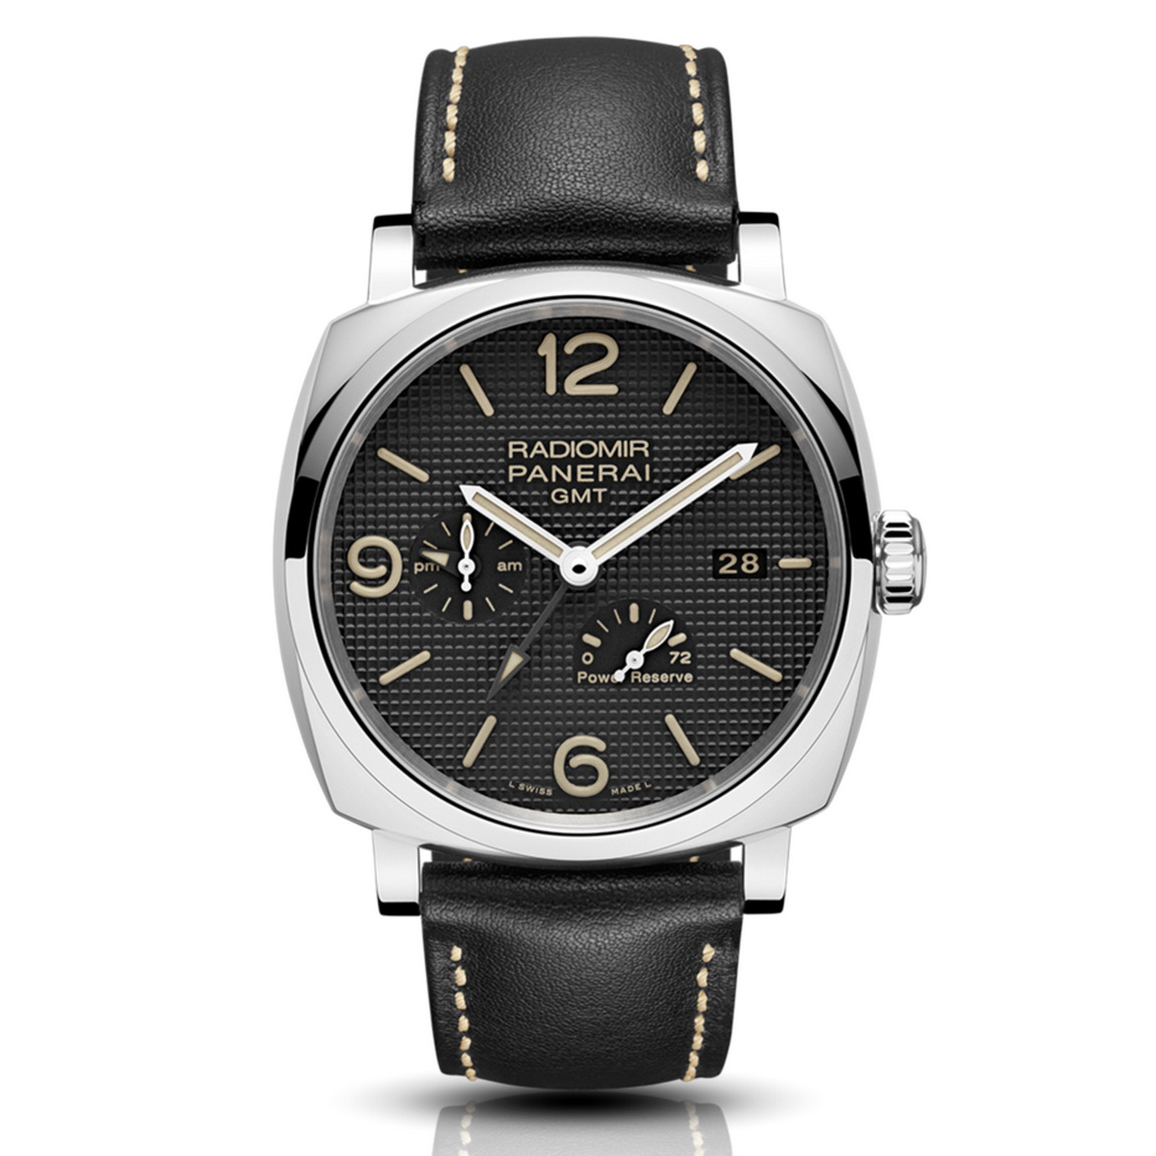 Radiomir 1940 3 Days GMT Power Reserve Automatic Acciaio PAM00628